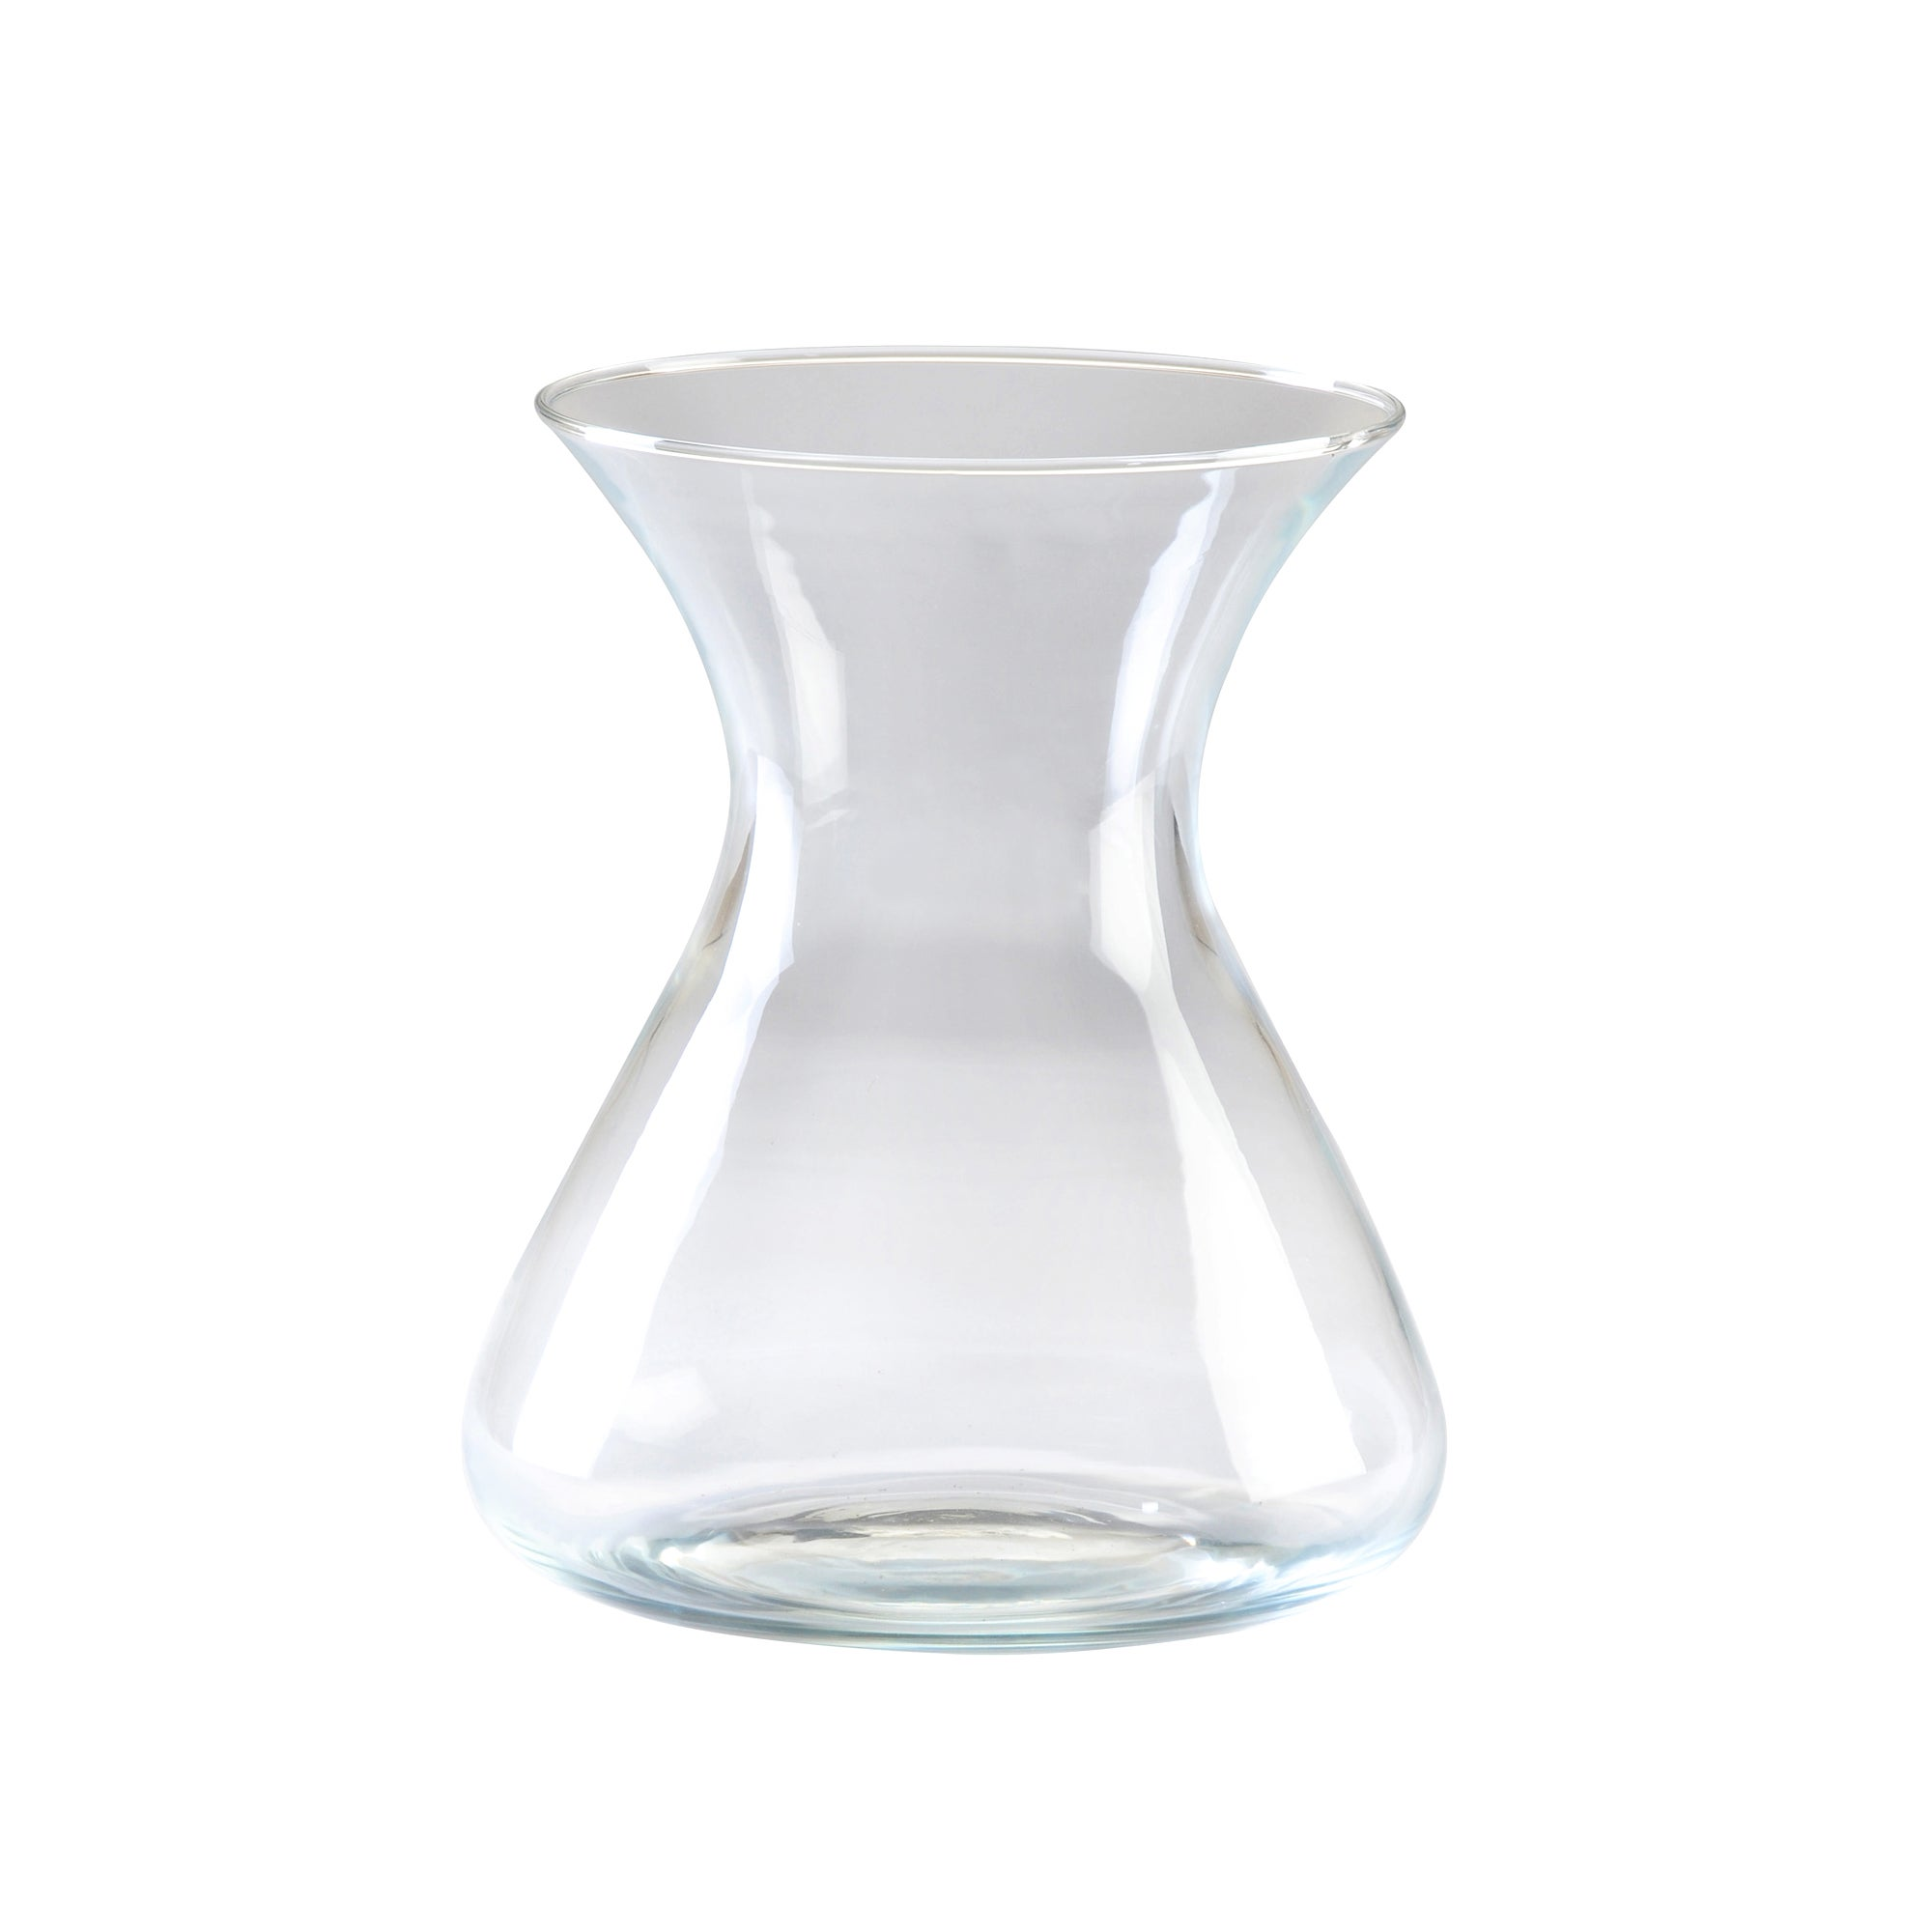 Image of Conical Flower Vase Clear